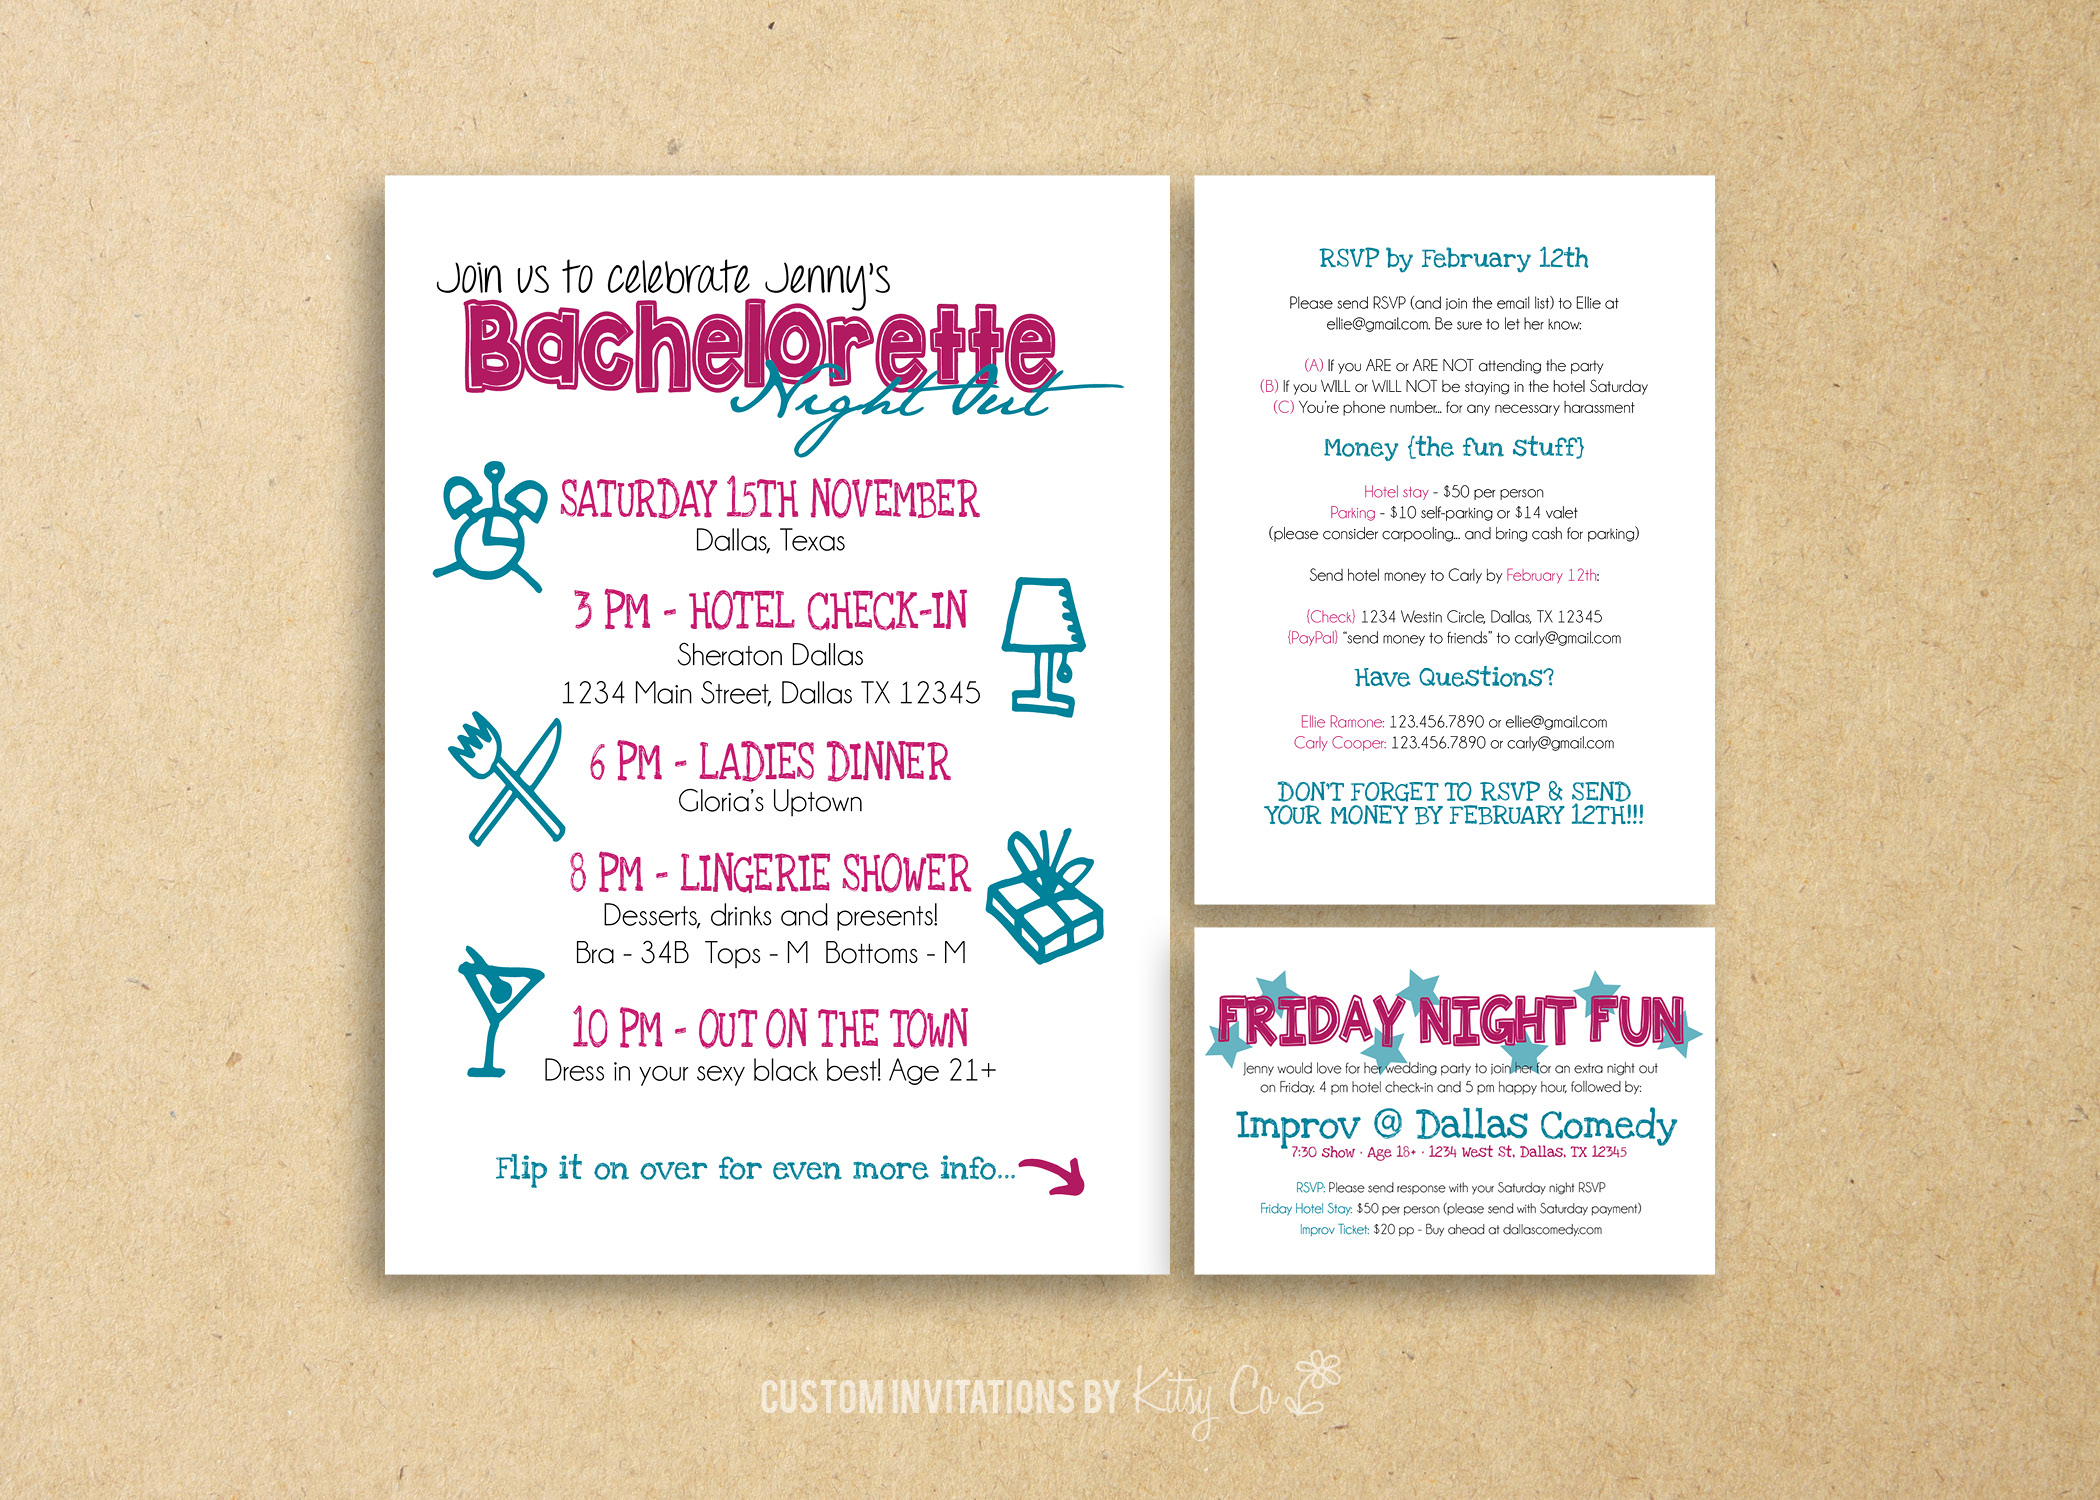 Bachelorette Party Timeline